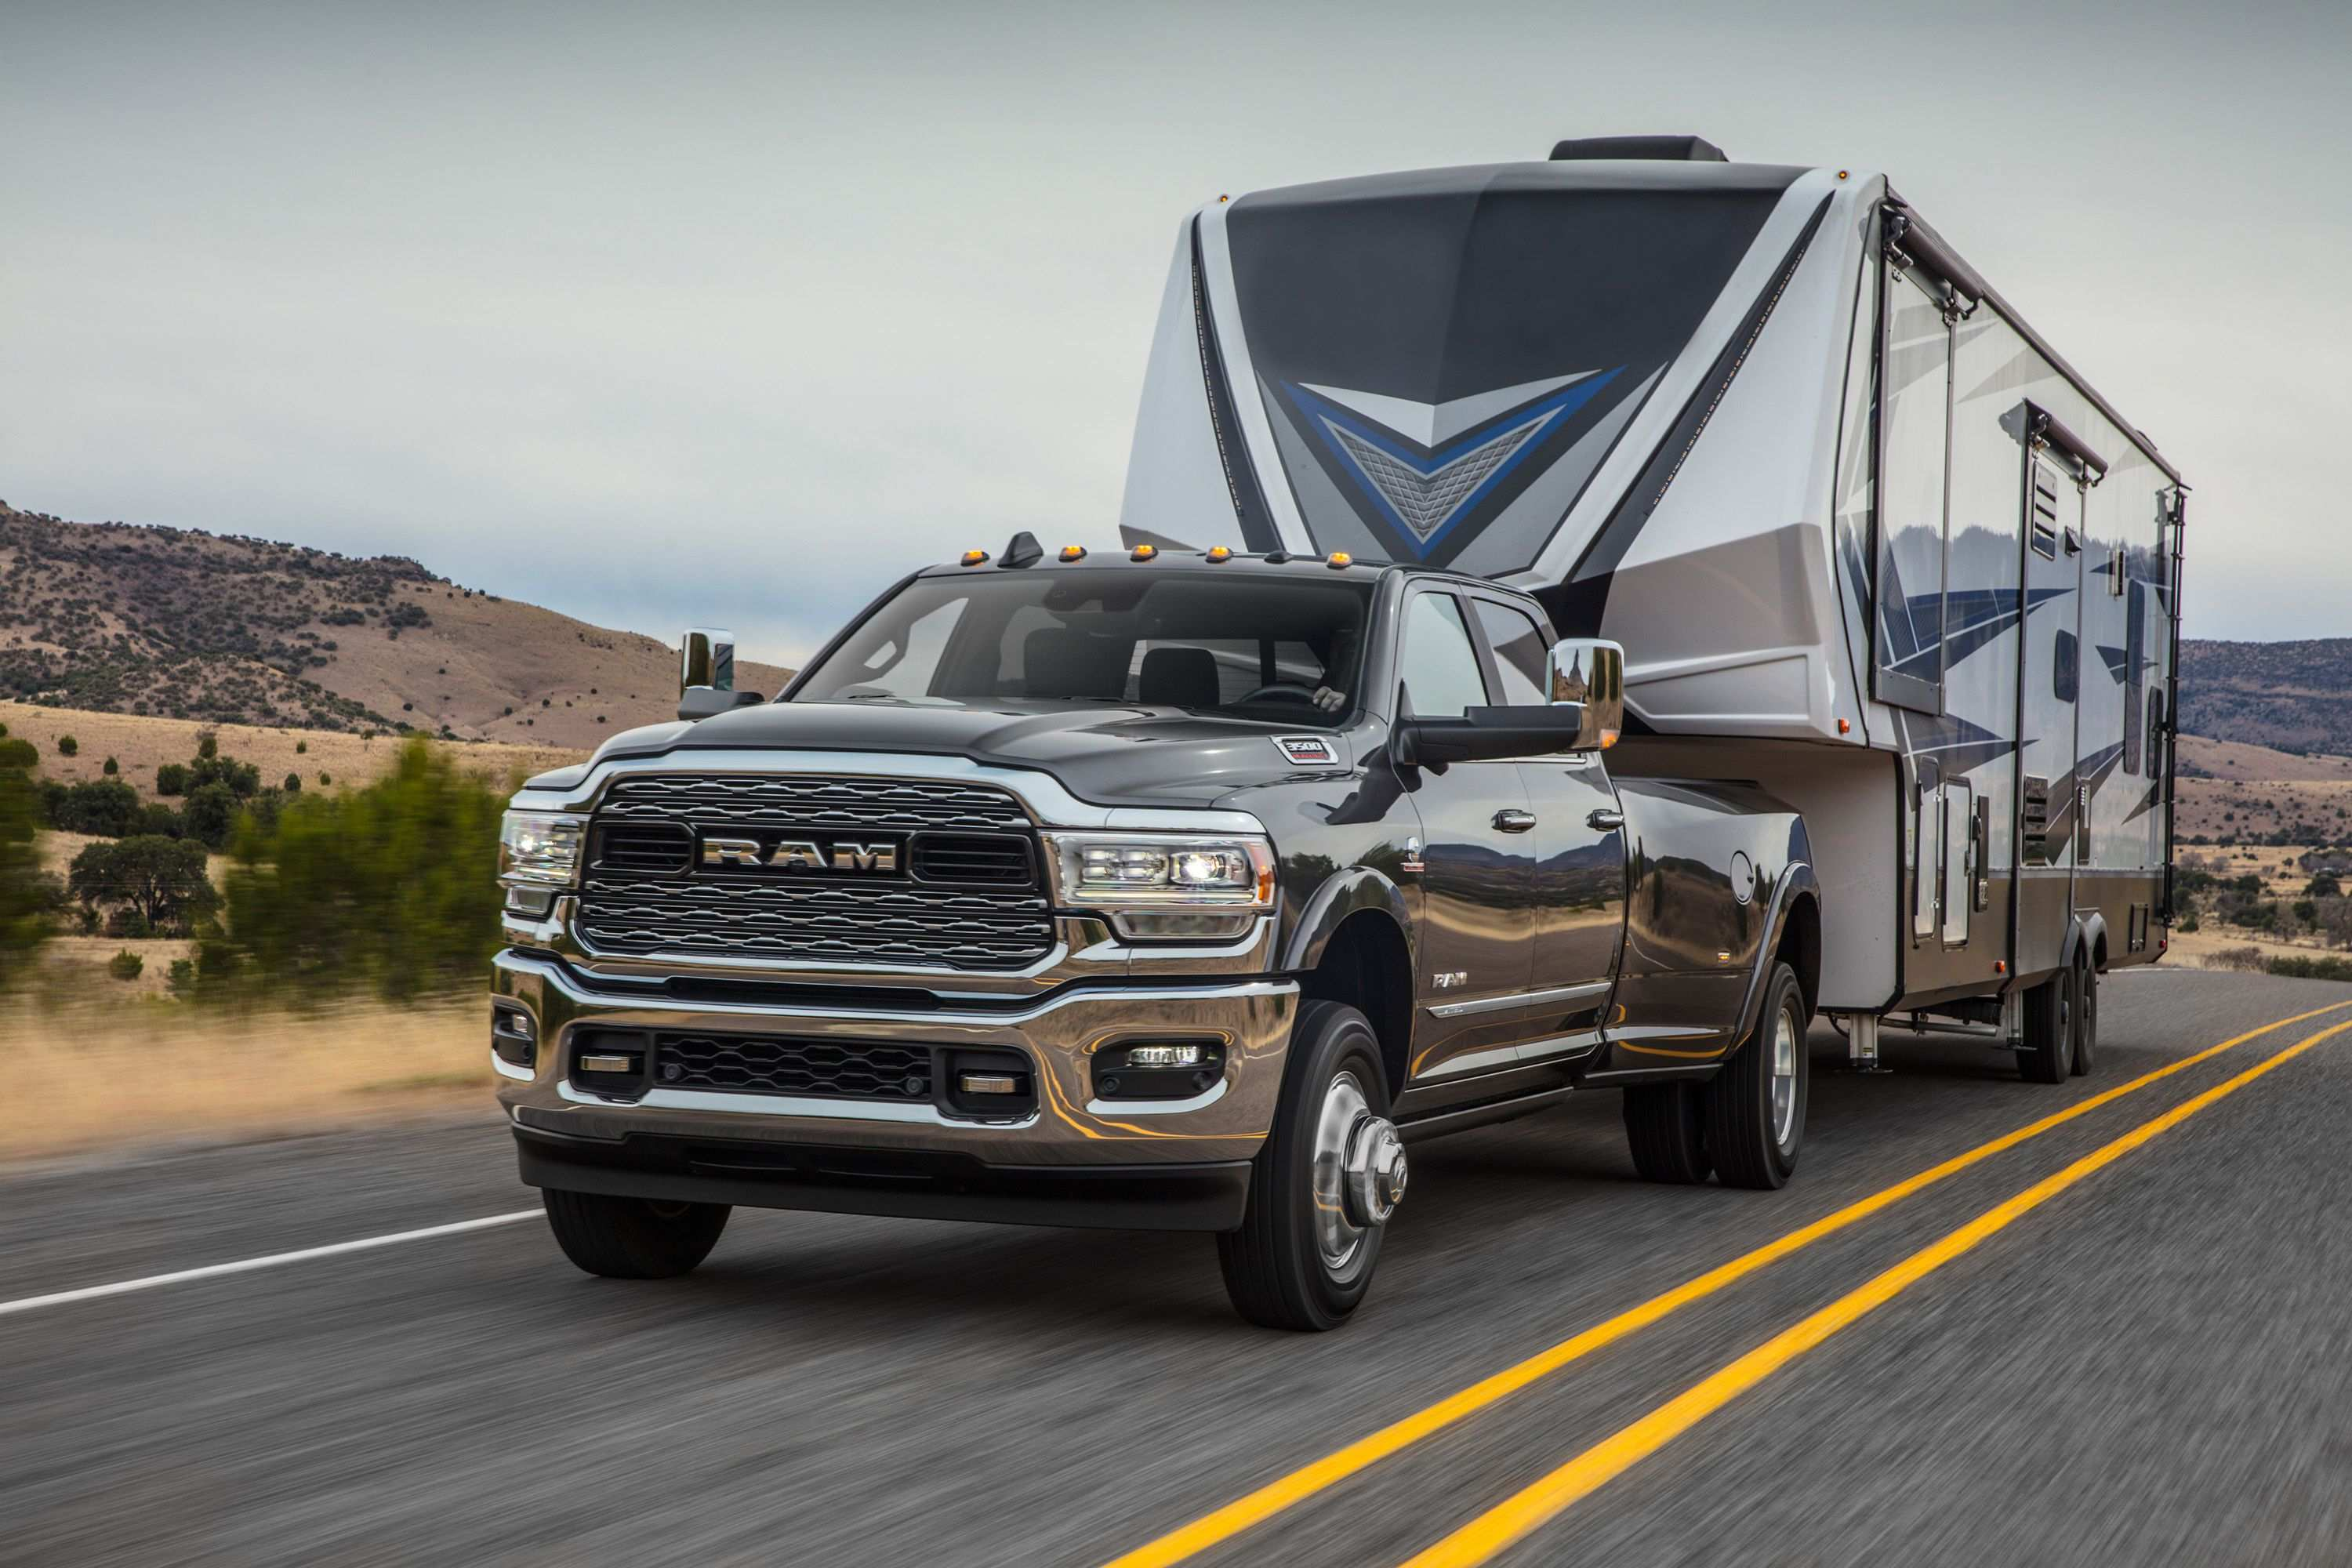 80 New Dodge Dually 2020 Specs and Review with Dodge Dually 2020